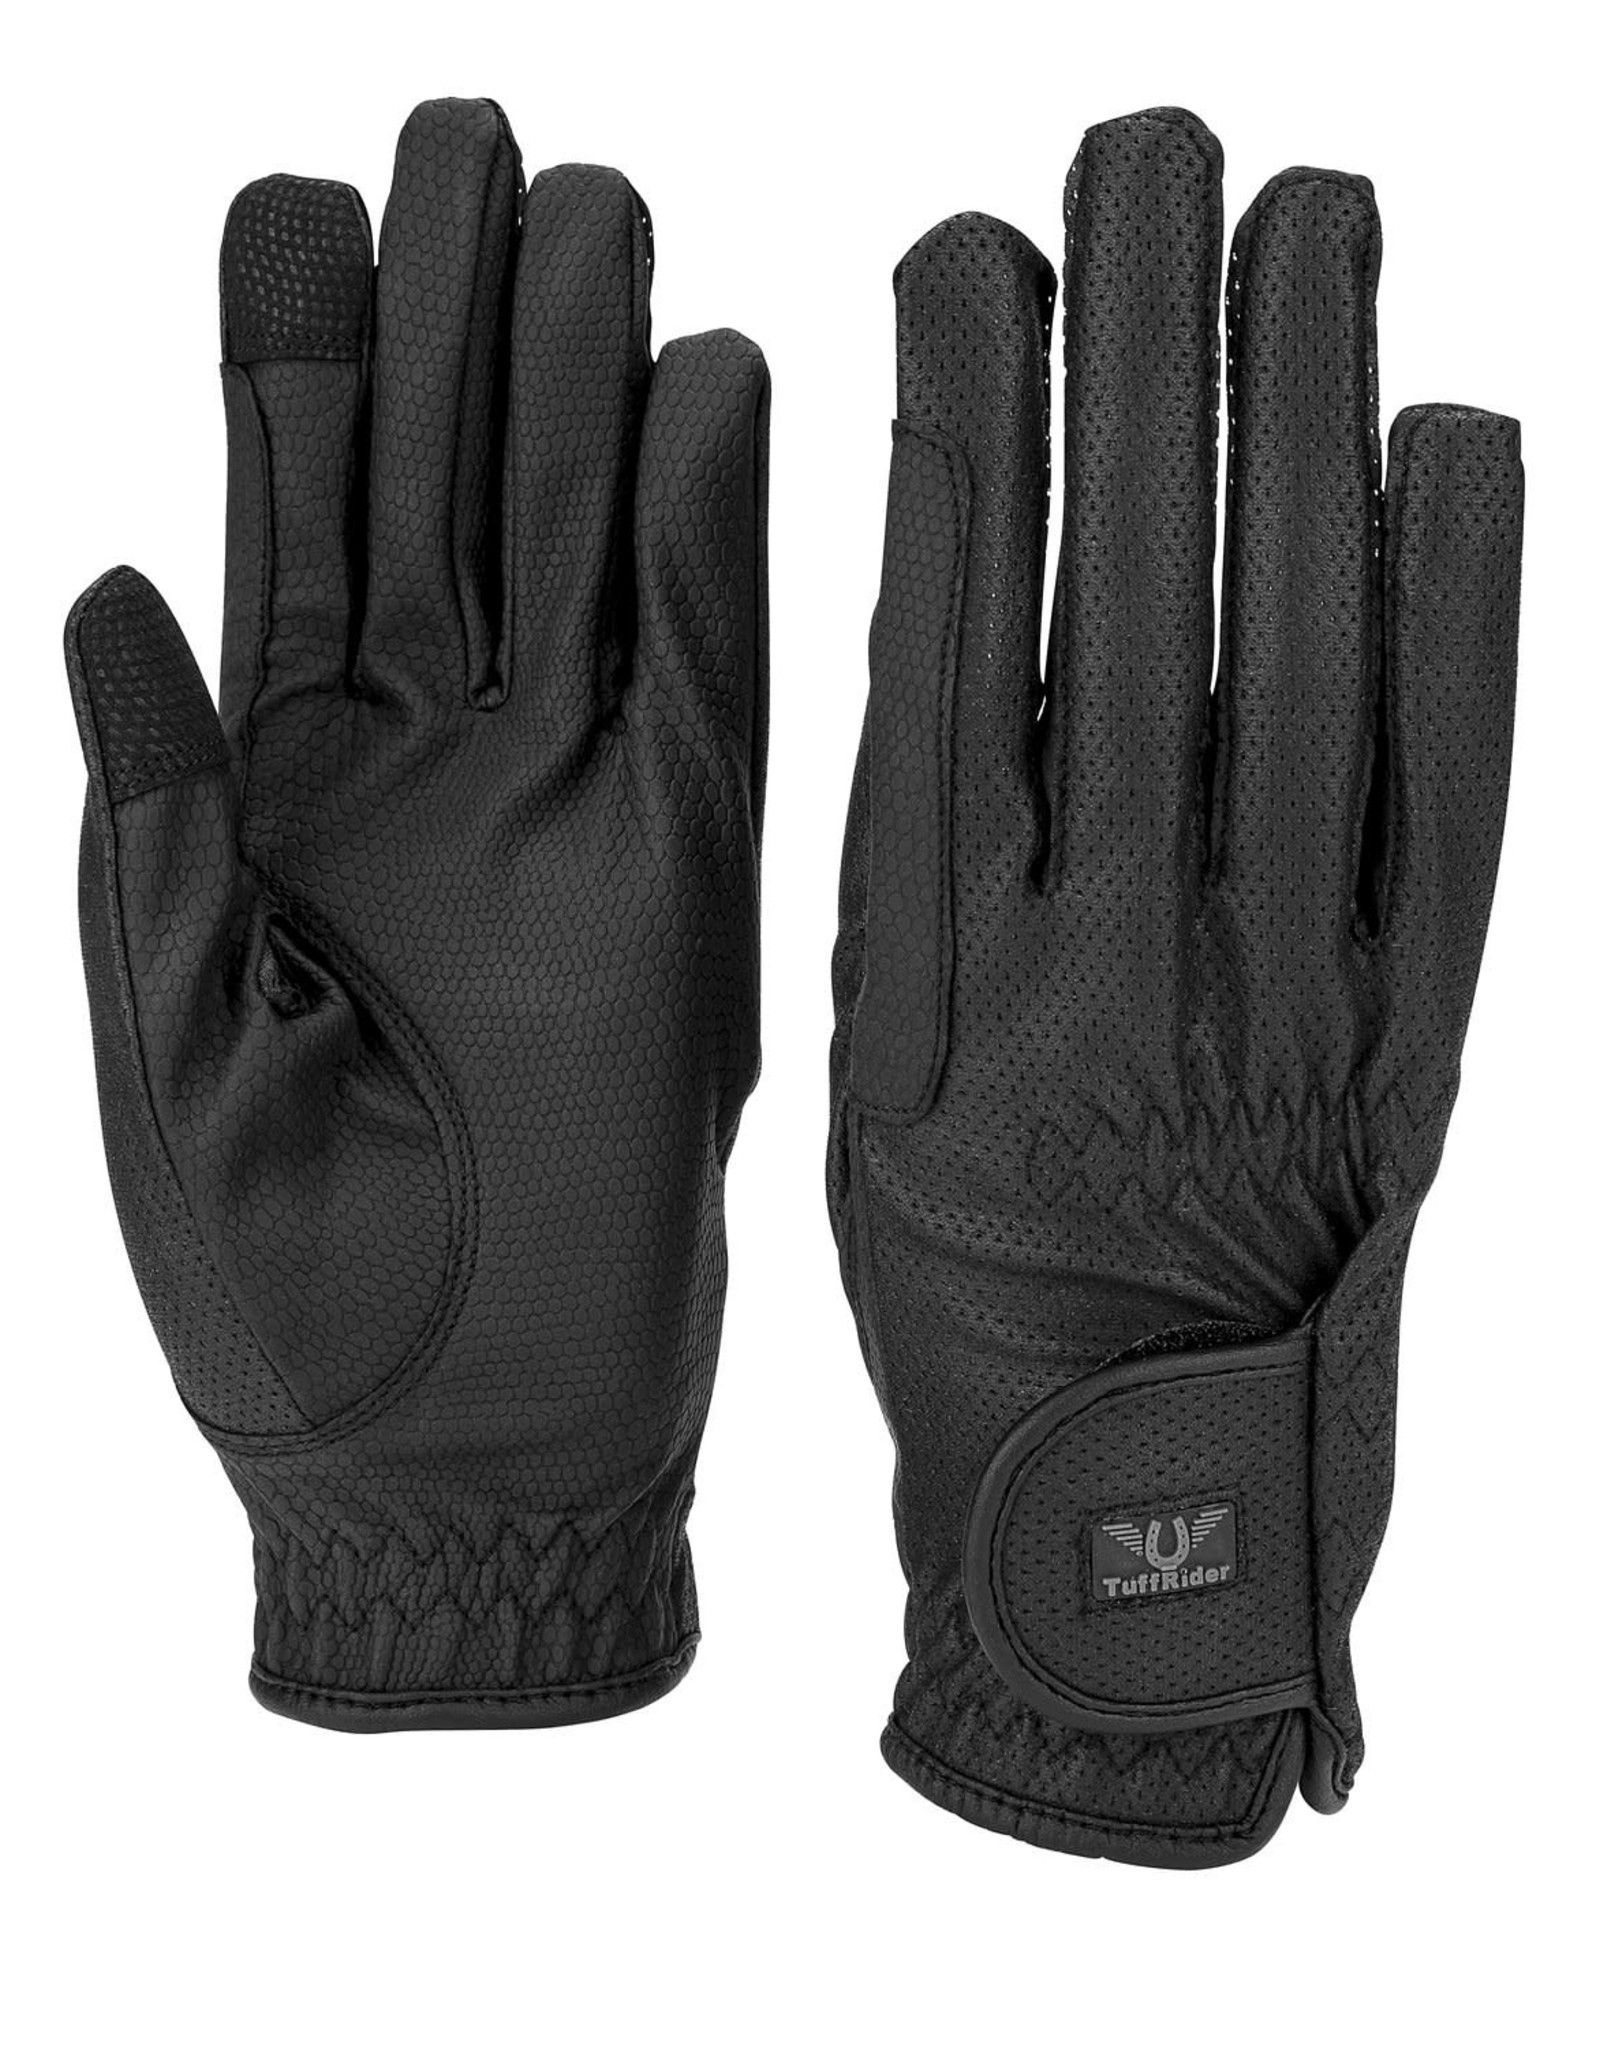 Tuff Rider Breathable gloves with grippy palm